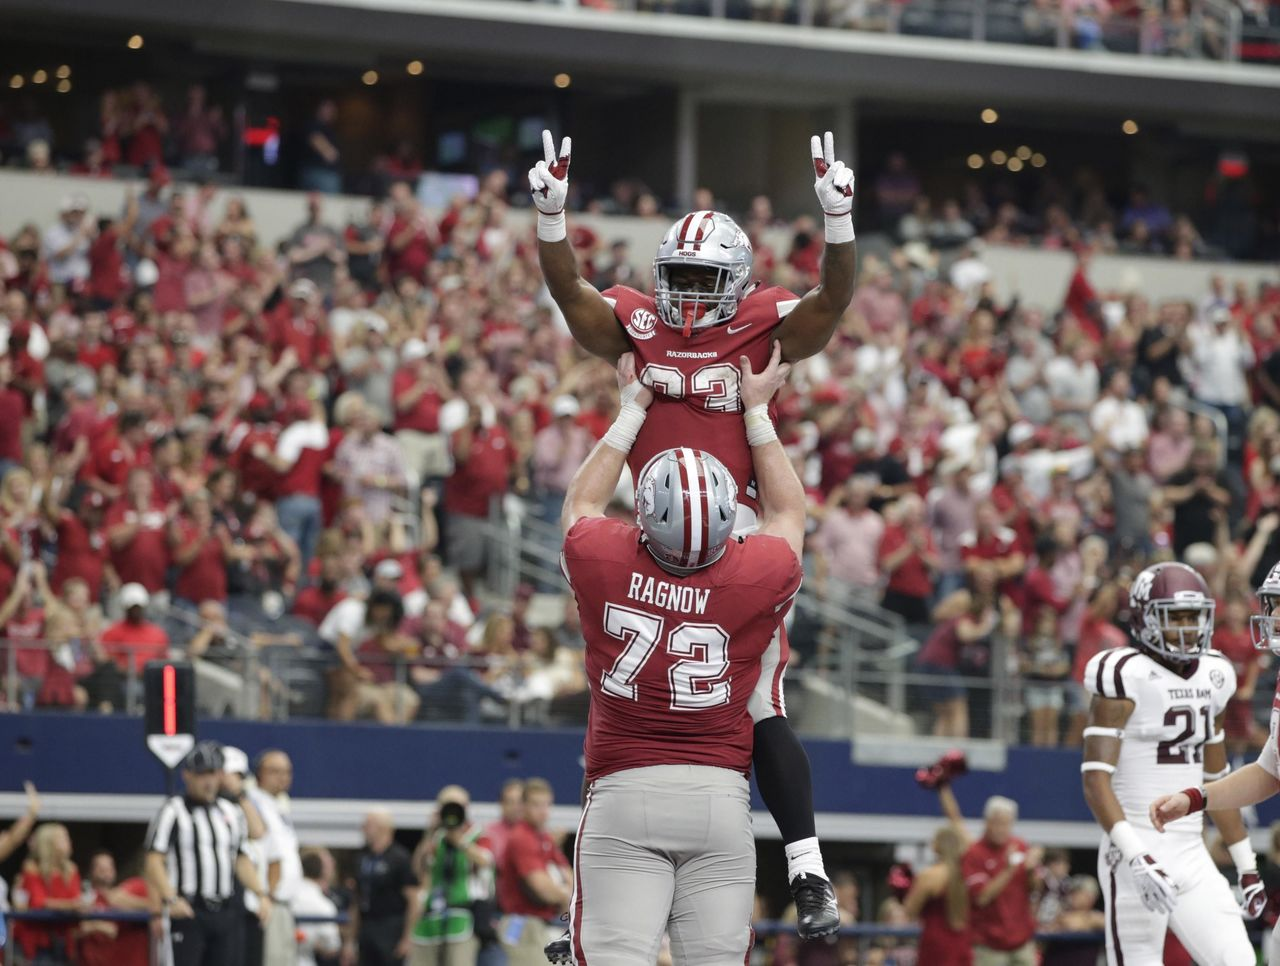 Cropped 2017 09 23t202132z 443437538 nocid rtrmadp 3 ncaa football arkansas at texas a m